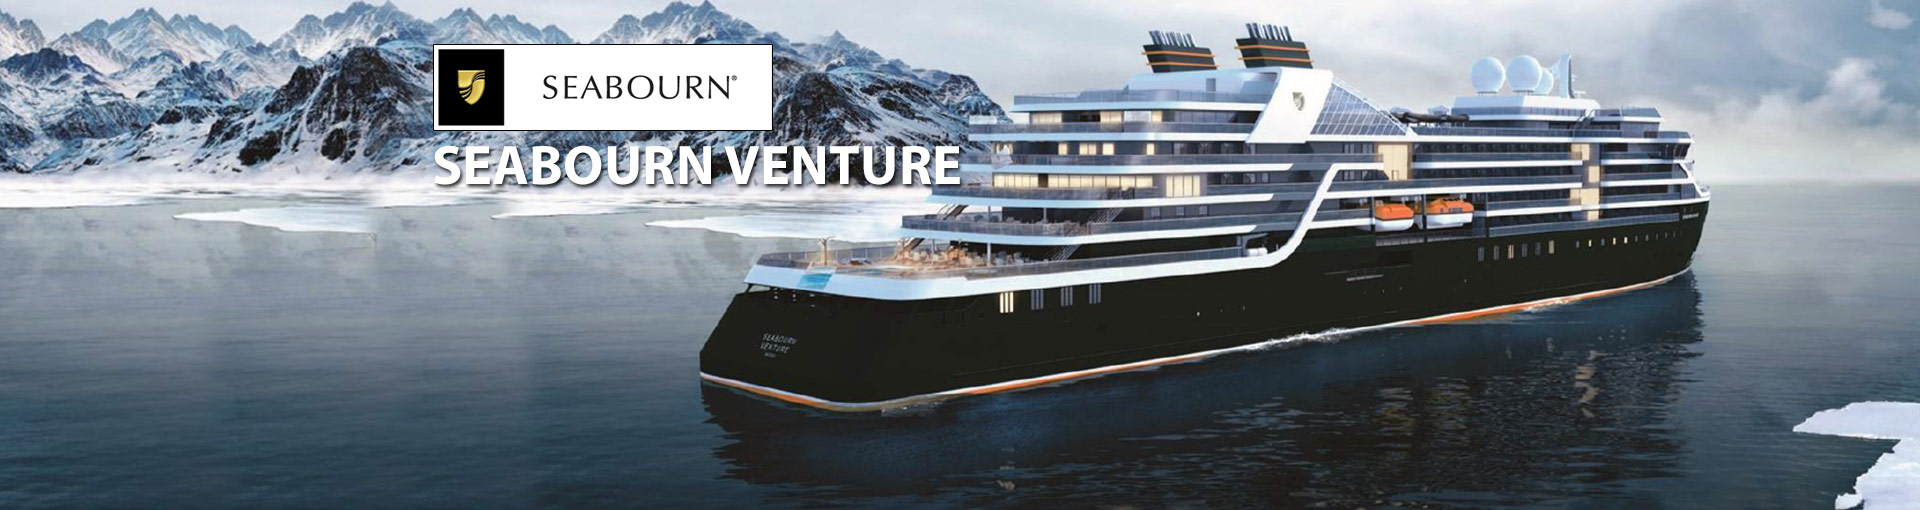 Banner for Seabourn Venture